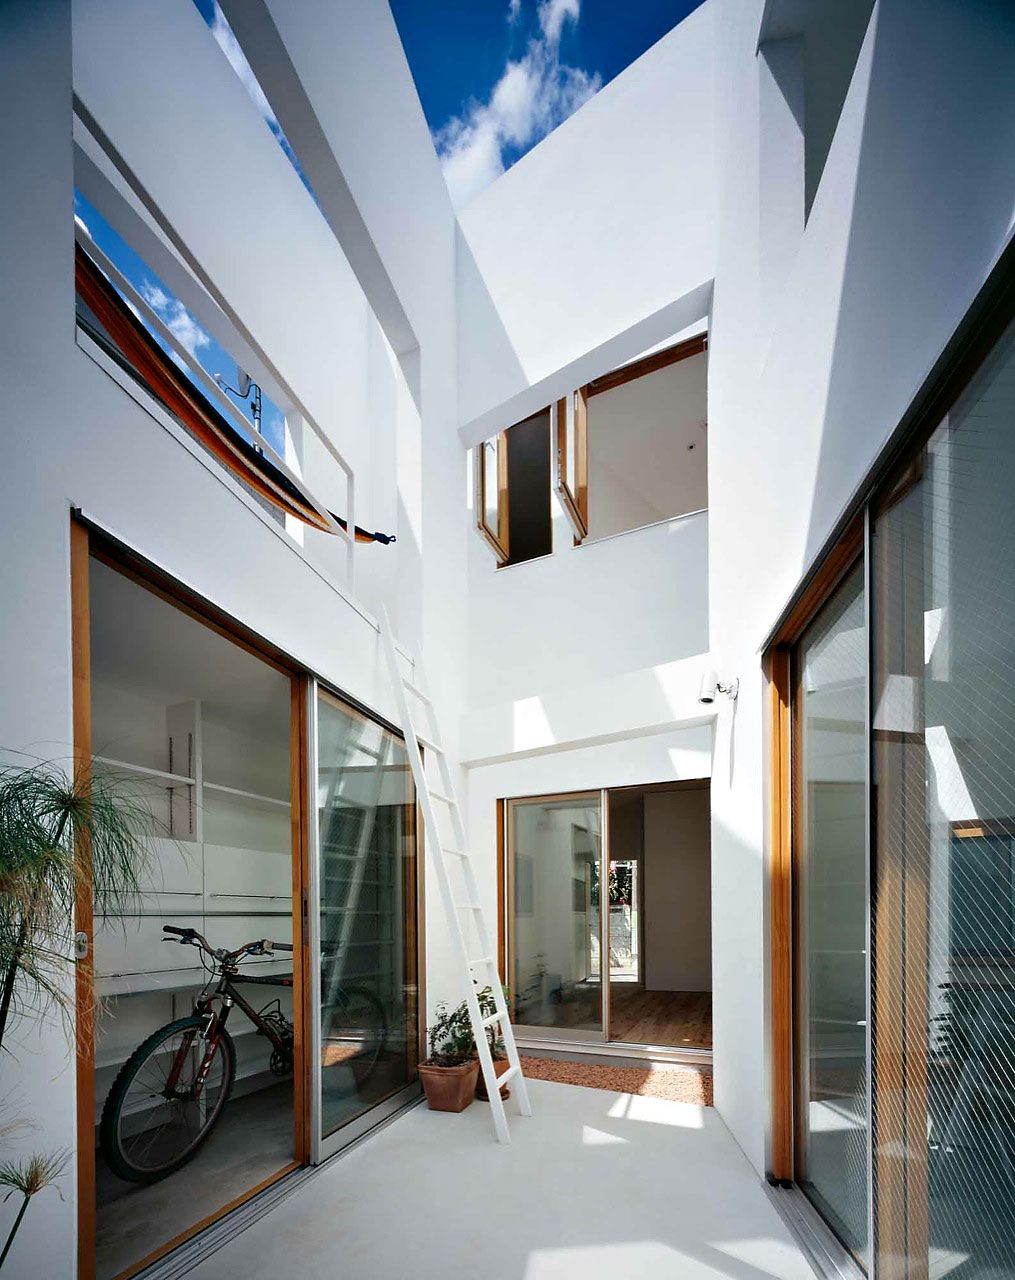 I intend on having an indoor-outdoor space similar to this in my ...